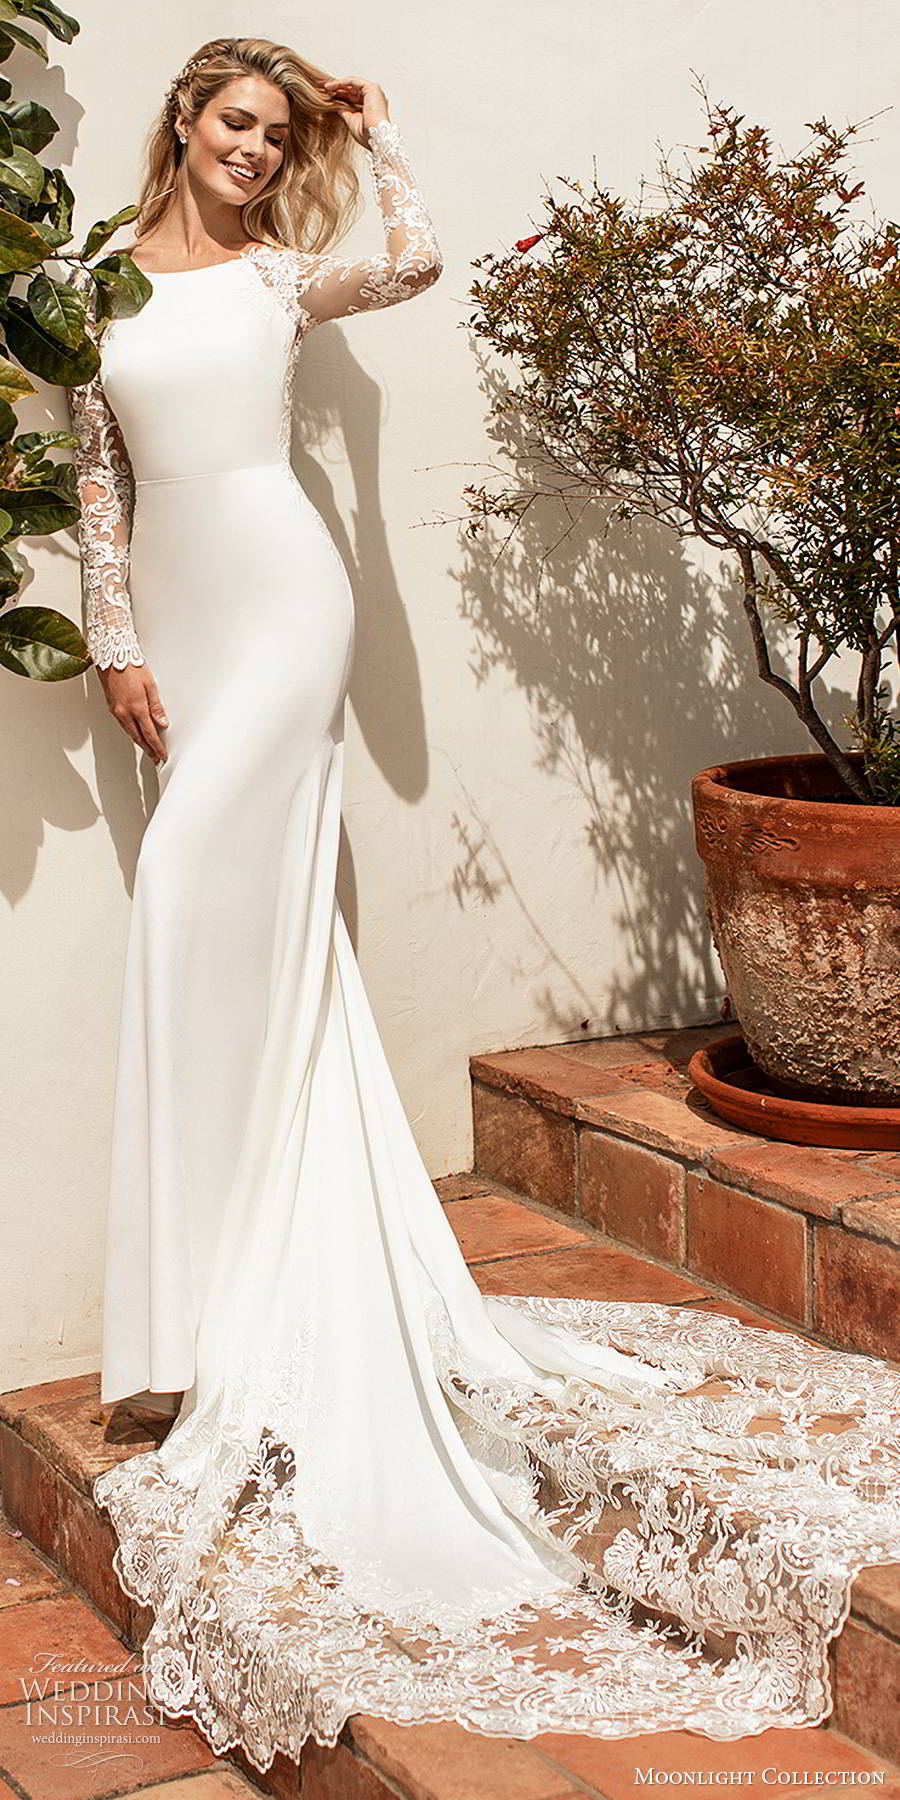 moonlight collection spring 2020 bridal illusion lace long sleeves bateau neckline clean bodice minimalist elegant sheath wedding dress illusion back chapel train (3) mv